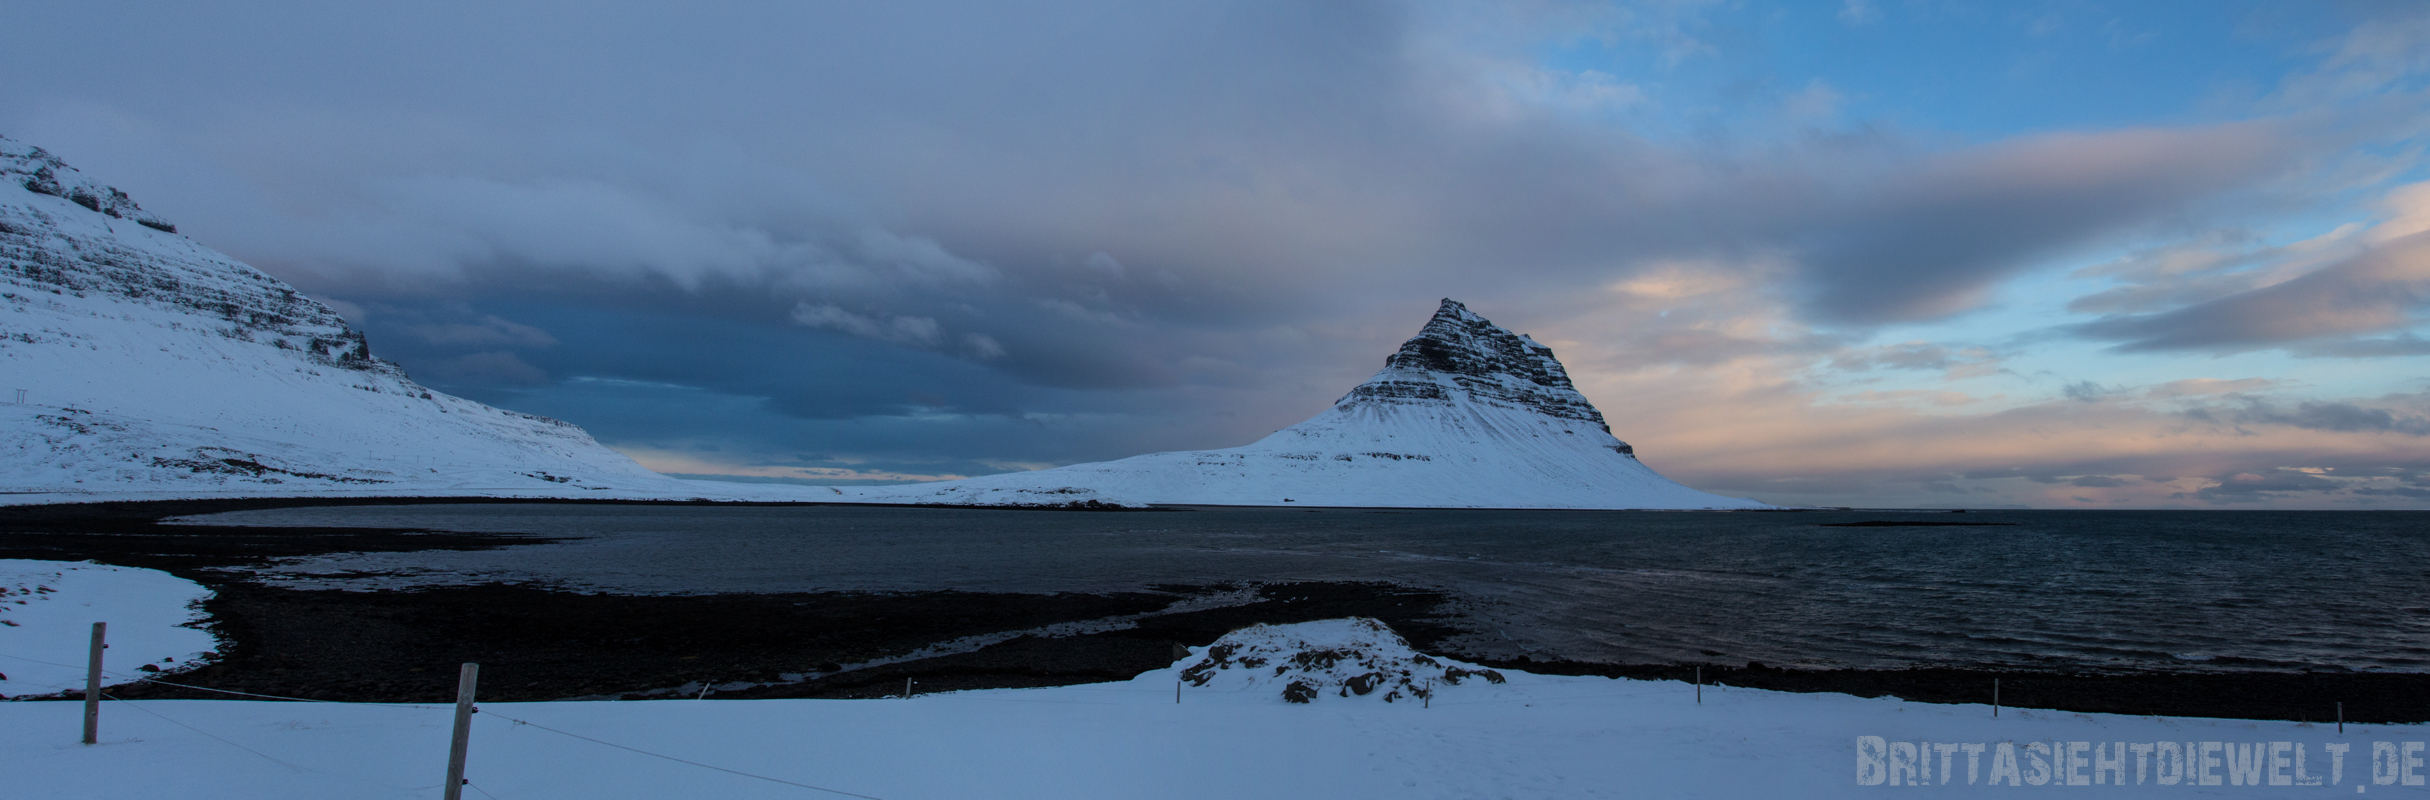 berg,snaefellsnes,island,iceland,winter,february,west,car,snow,tipps,panorama